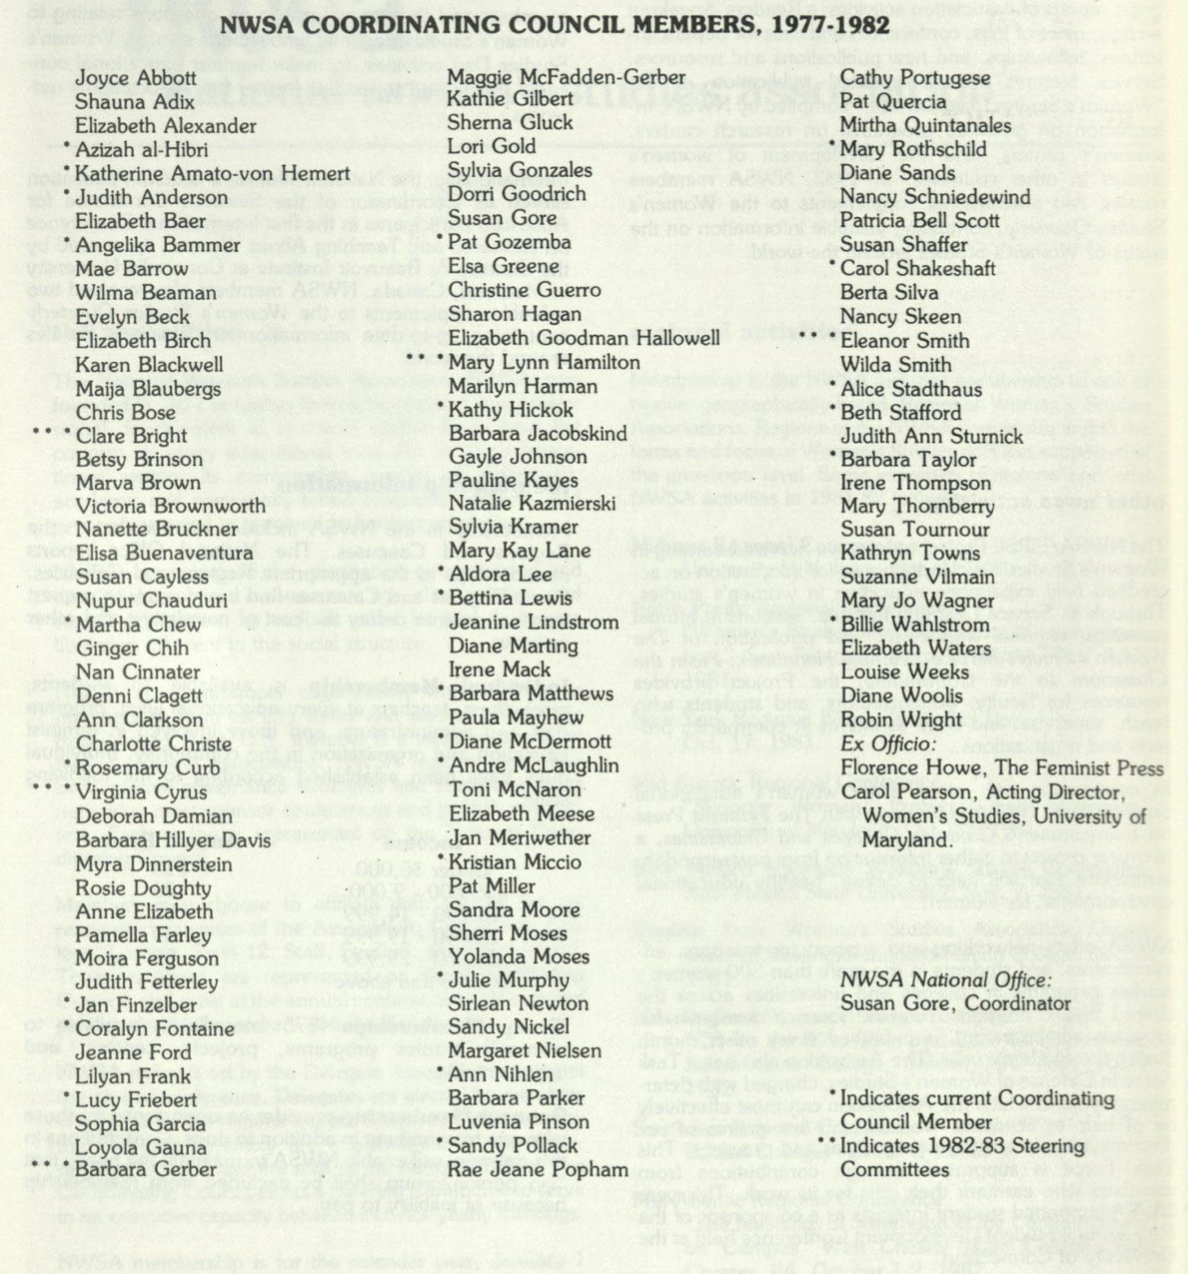 1977-1982 Coordinating Council Members